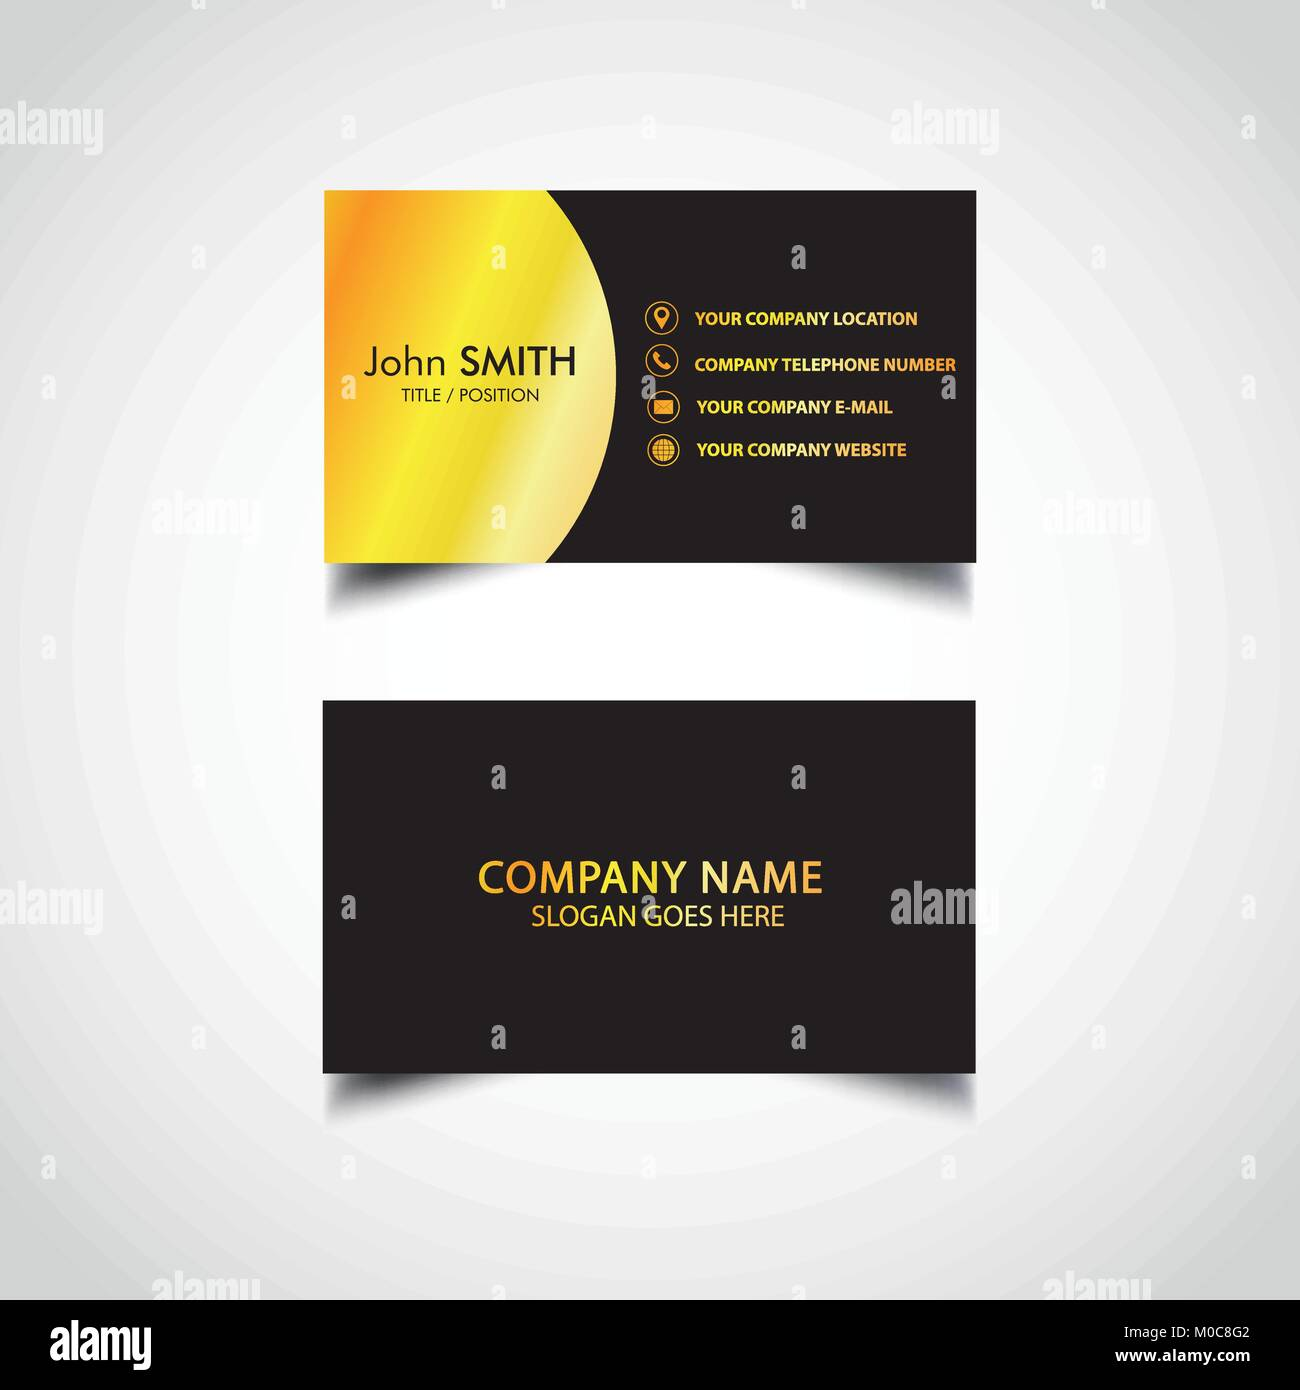 Golden Business Card Template Vector Illustration Eps File Stock